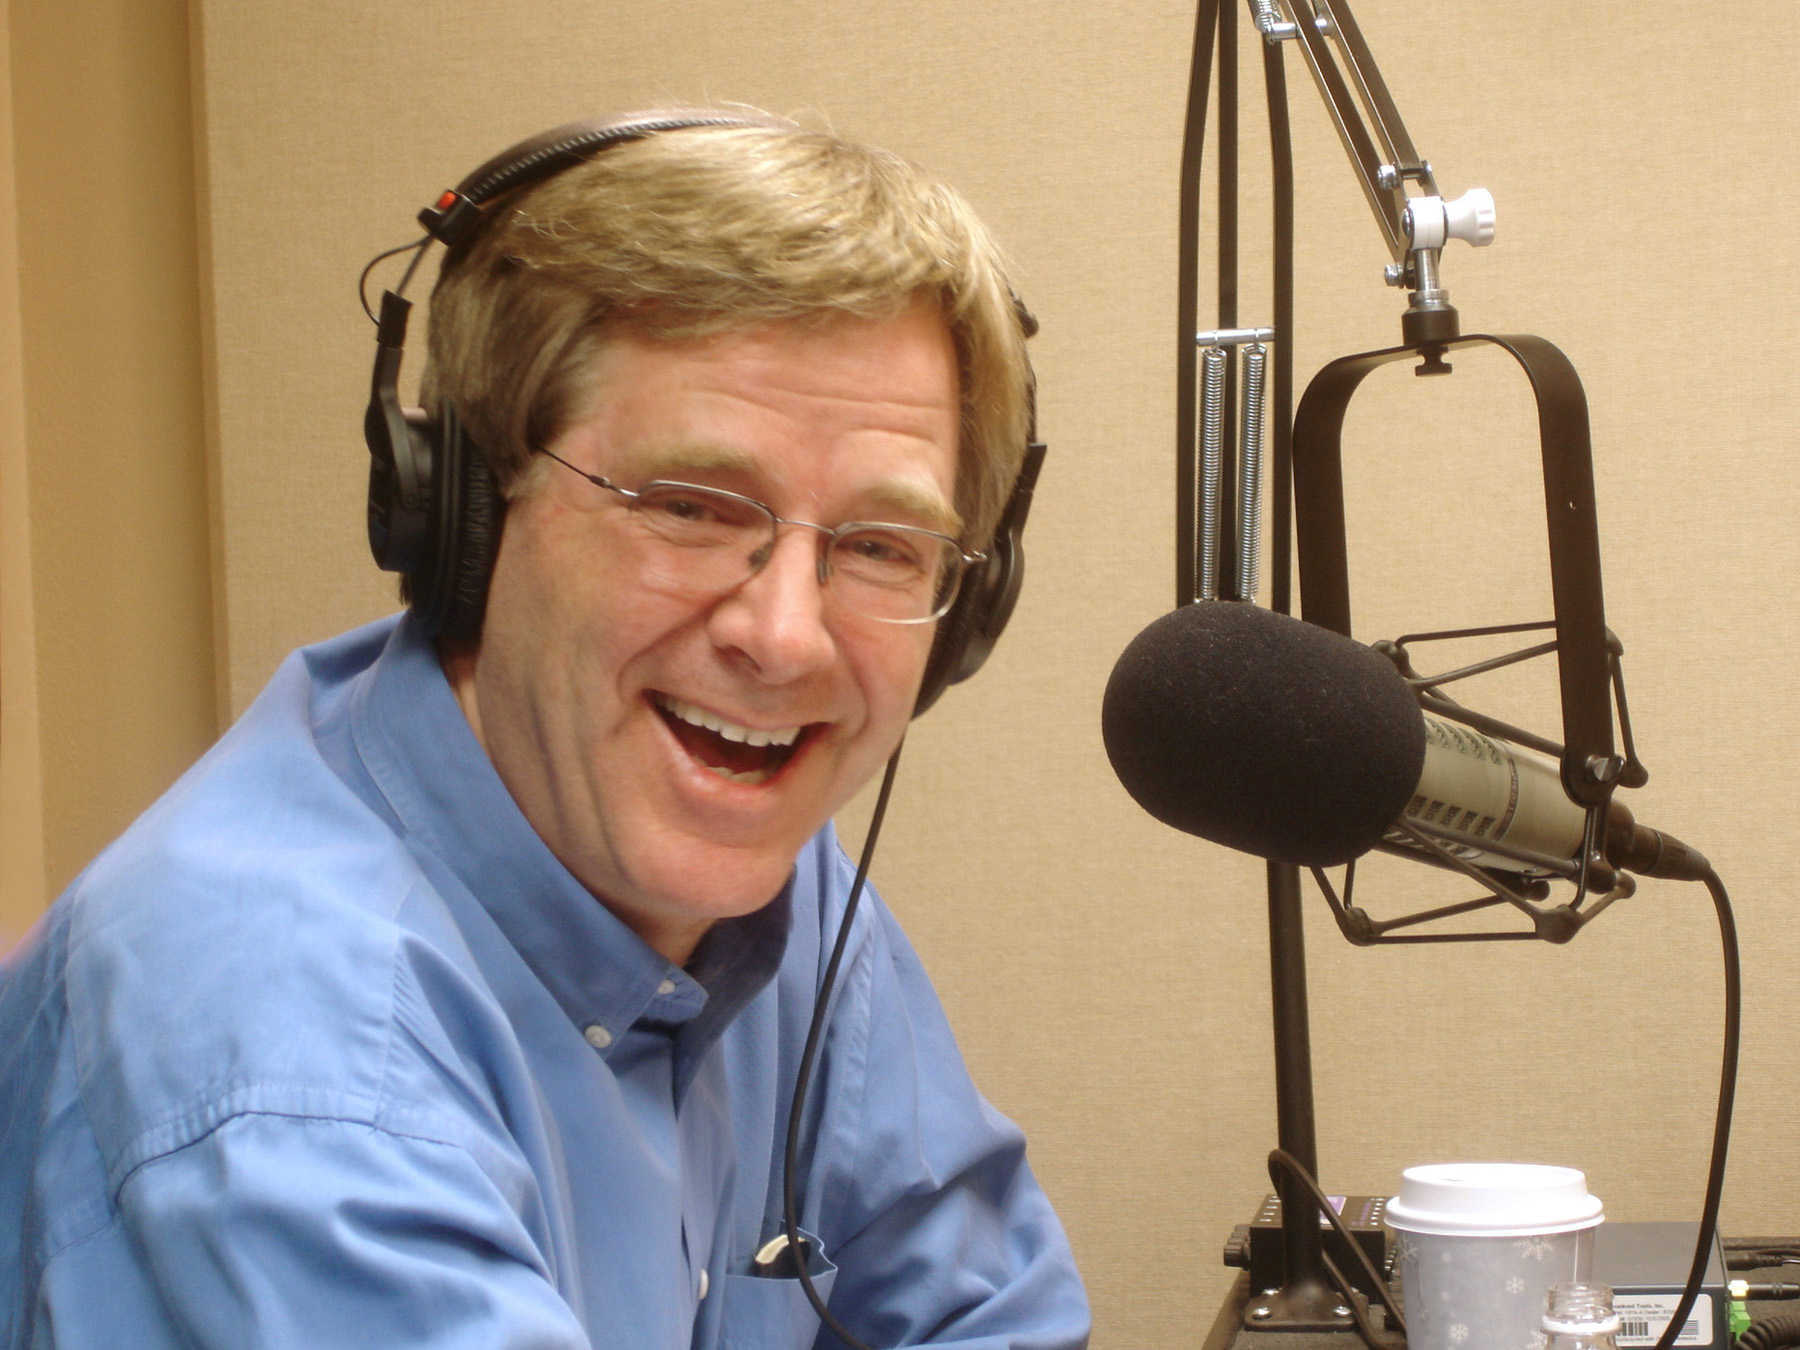 At the mic for his radio show, <em>Travel with Rick Steves</em>